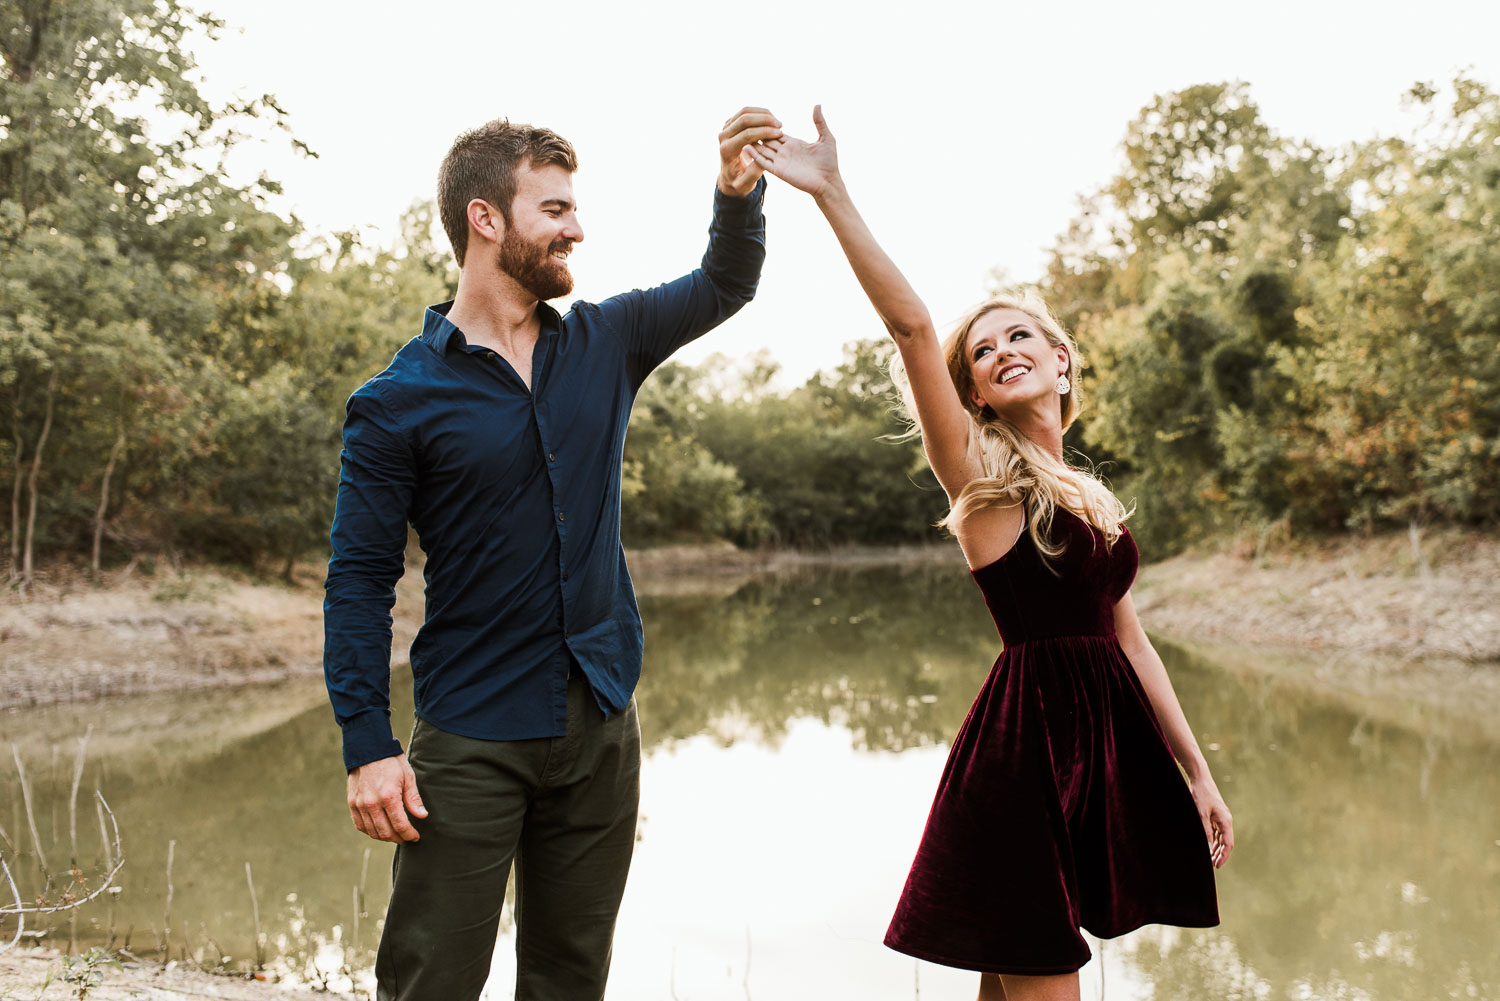 josh - lindsey - engagement - photos - alrington - texas - river - legacy - park-10.jpg